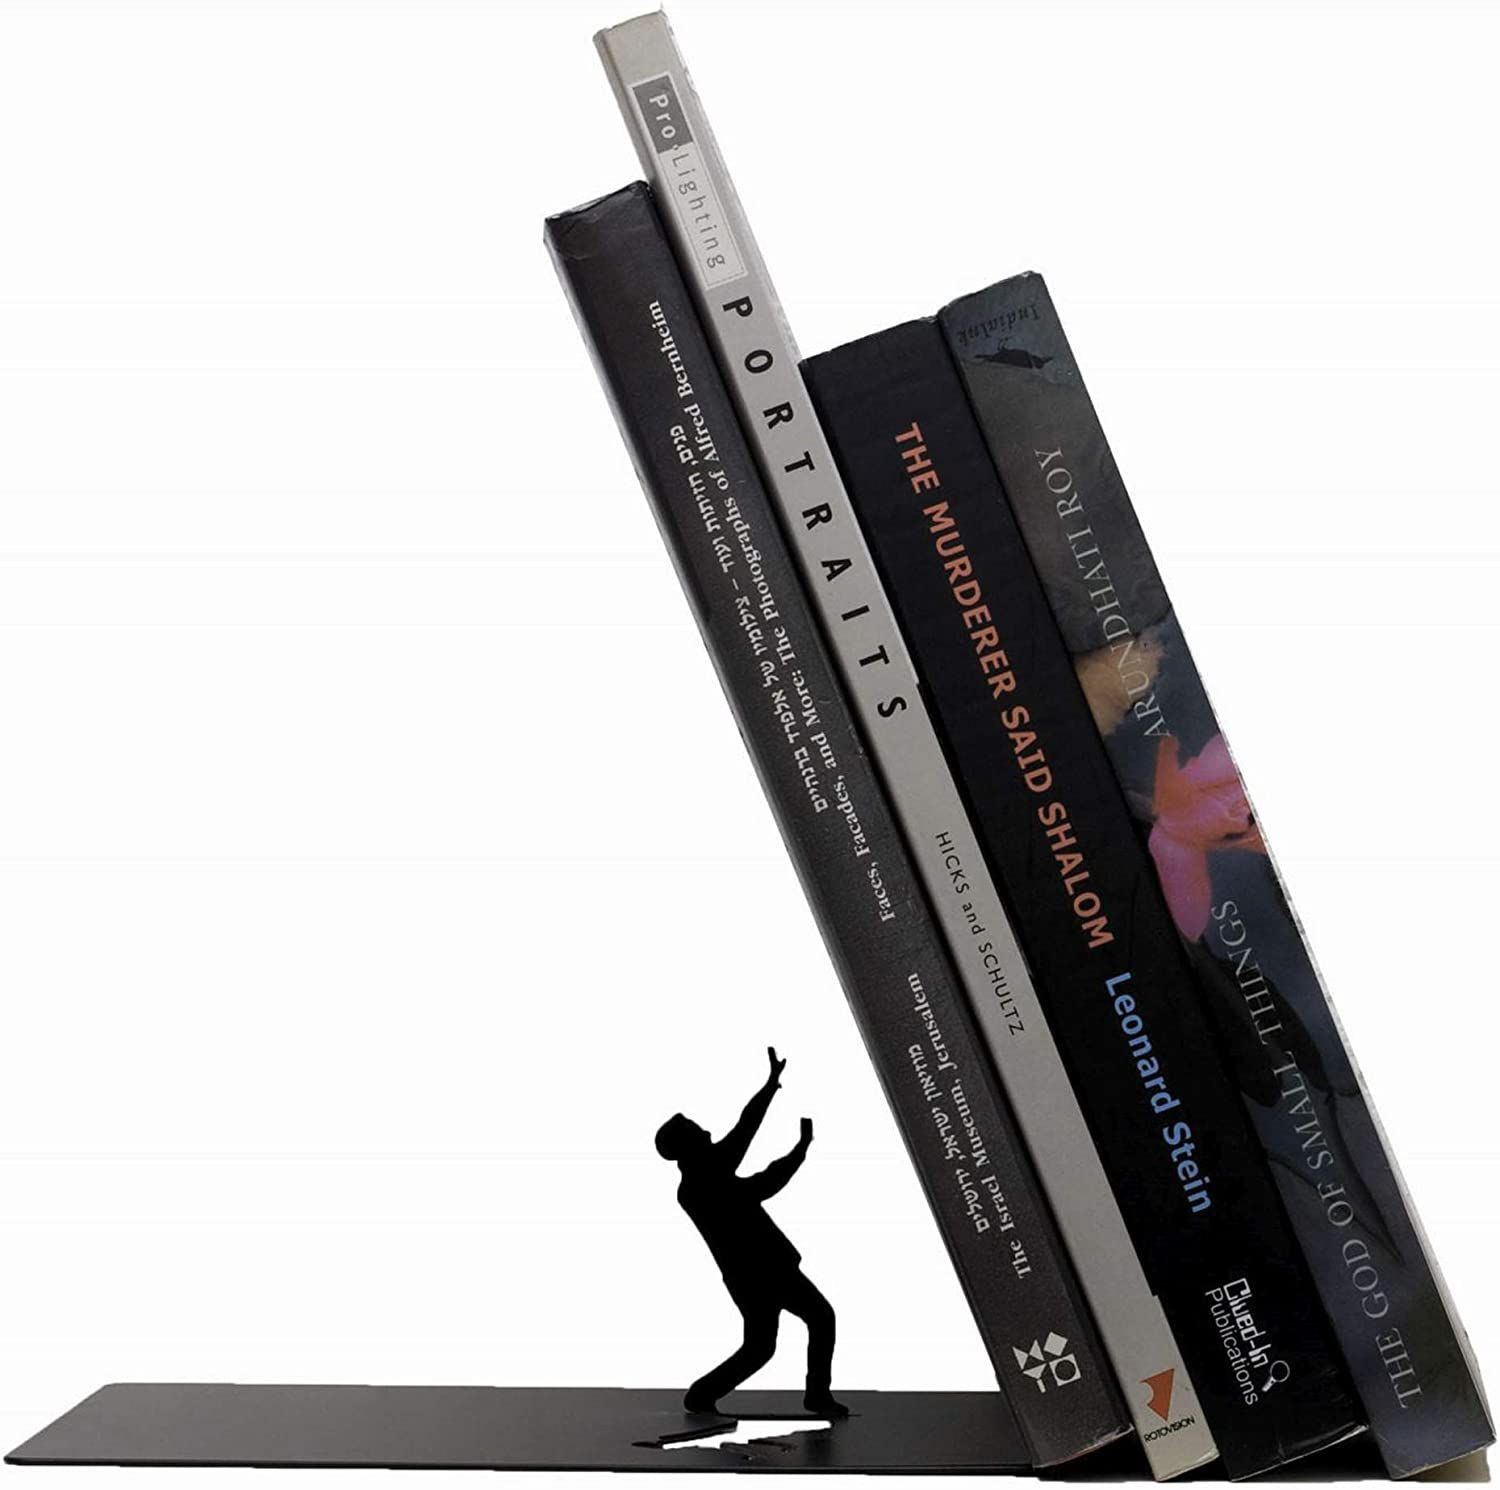 Book End Black Metal Bookend Cool Book Stopper Funny Book Holder Shelf Divider Falling Bookend Amazon Ca Home Kitchen